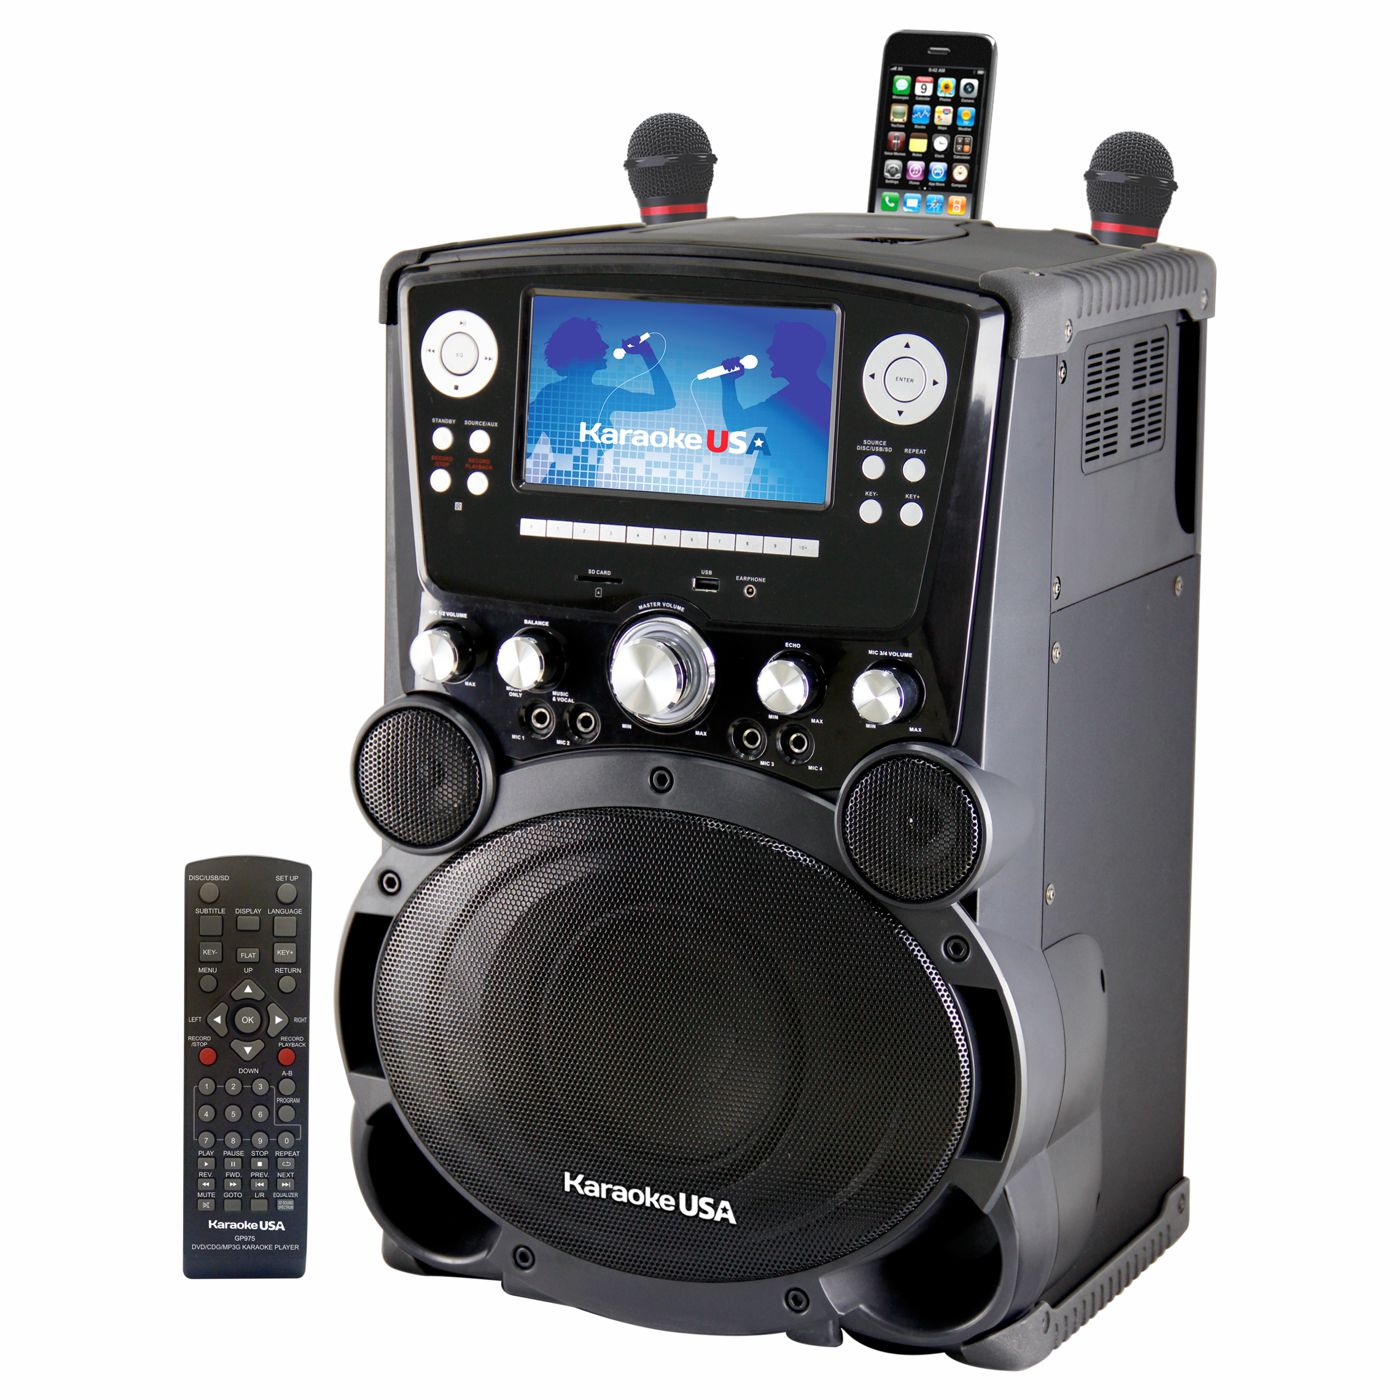 GP975 - Professional DVD/CDG/MP3G Karaoke Player with 7